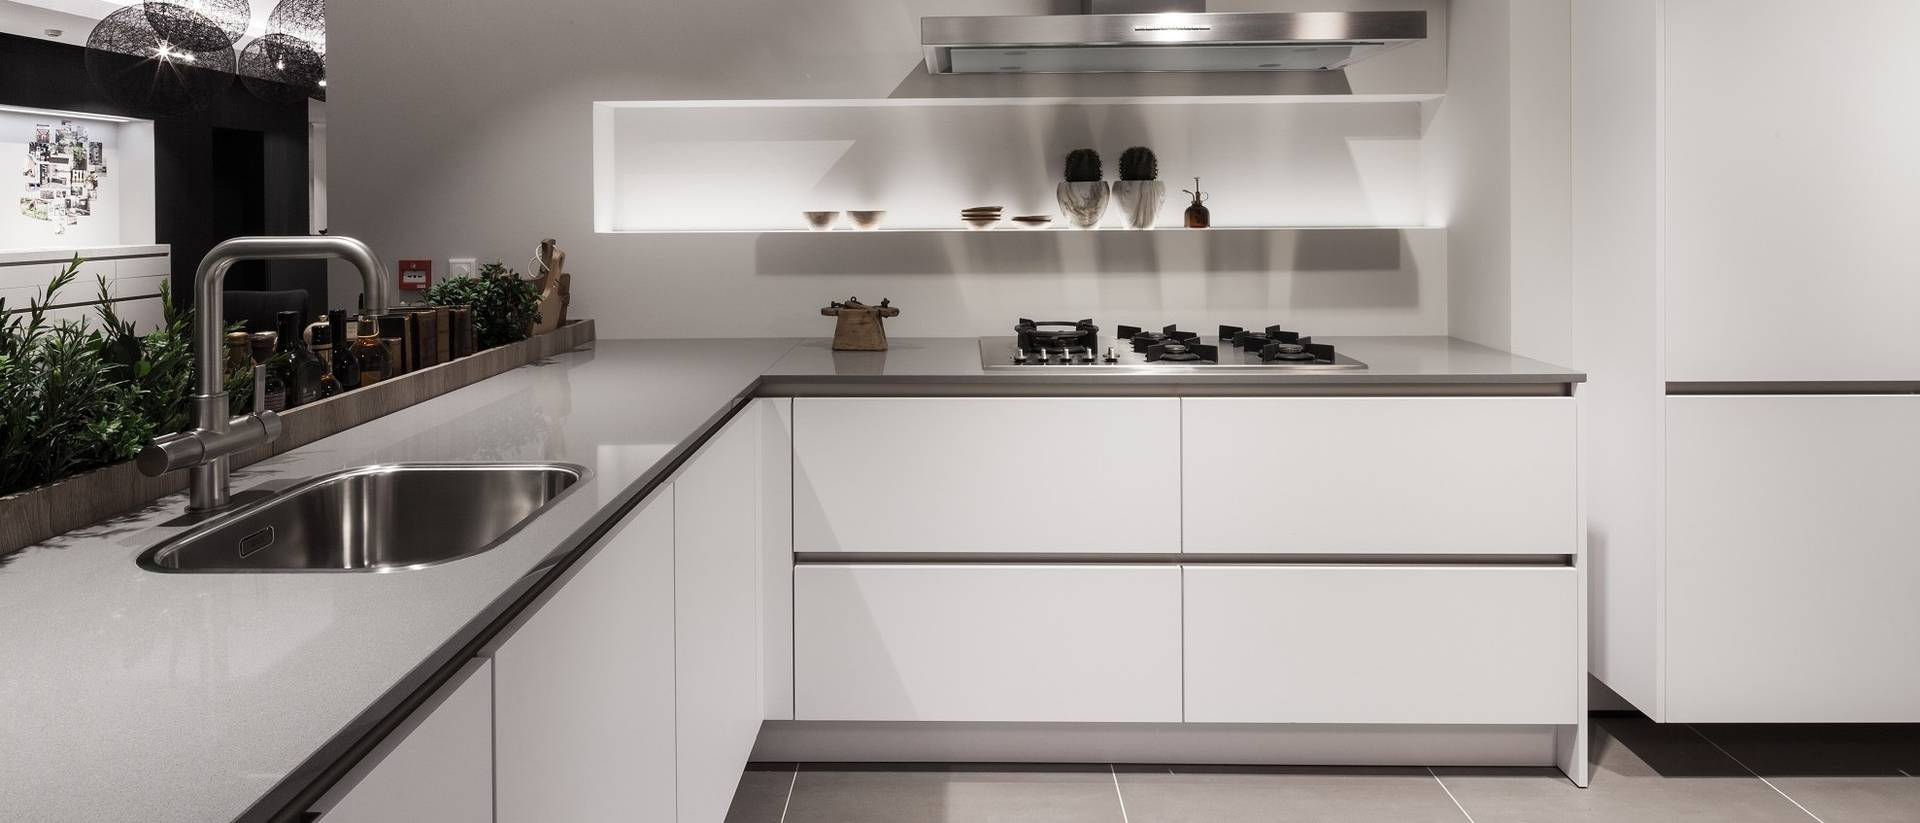 SieMatic Kitchen Studios: Experts in kitchen design | SieMatic